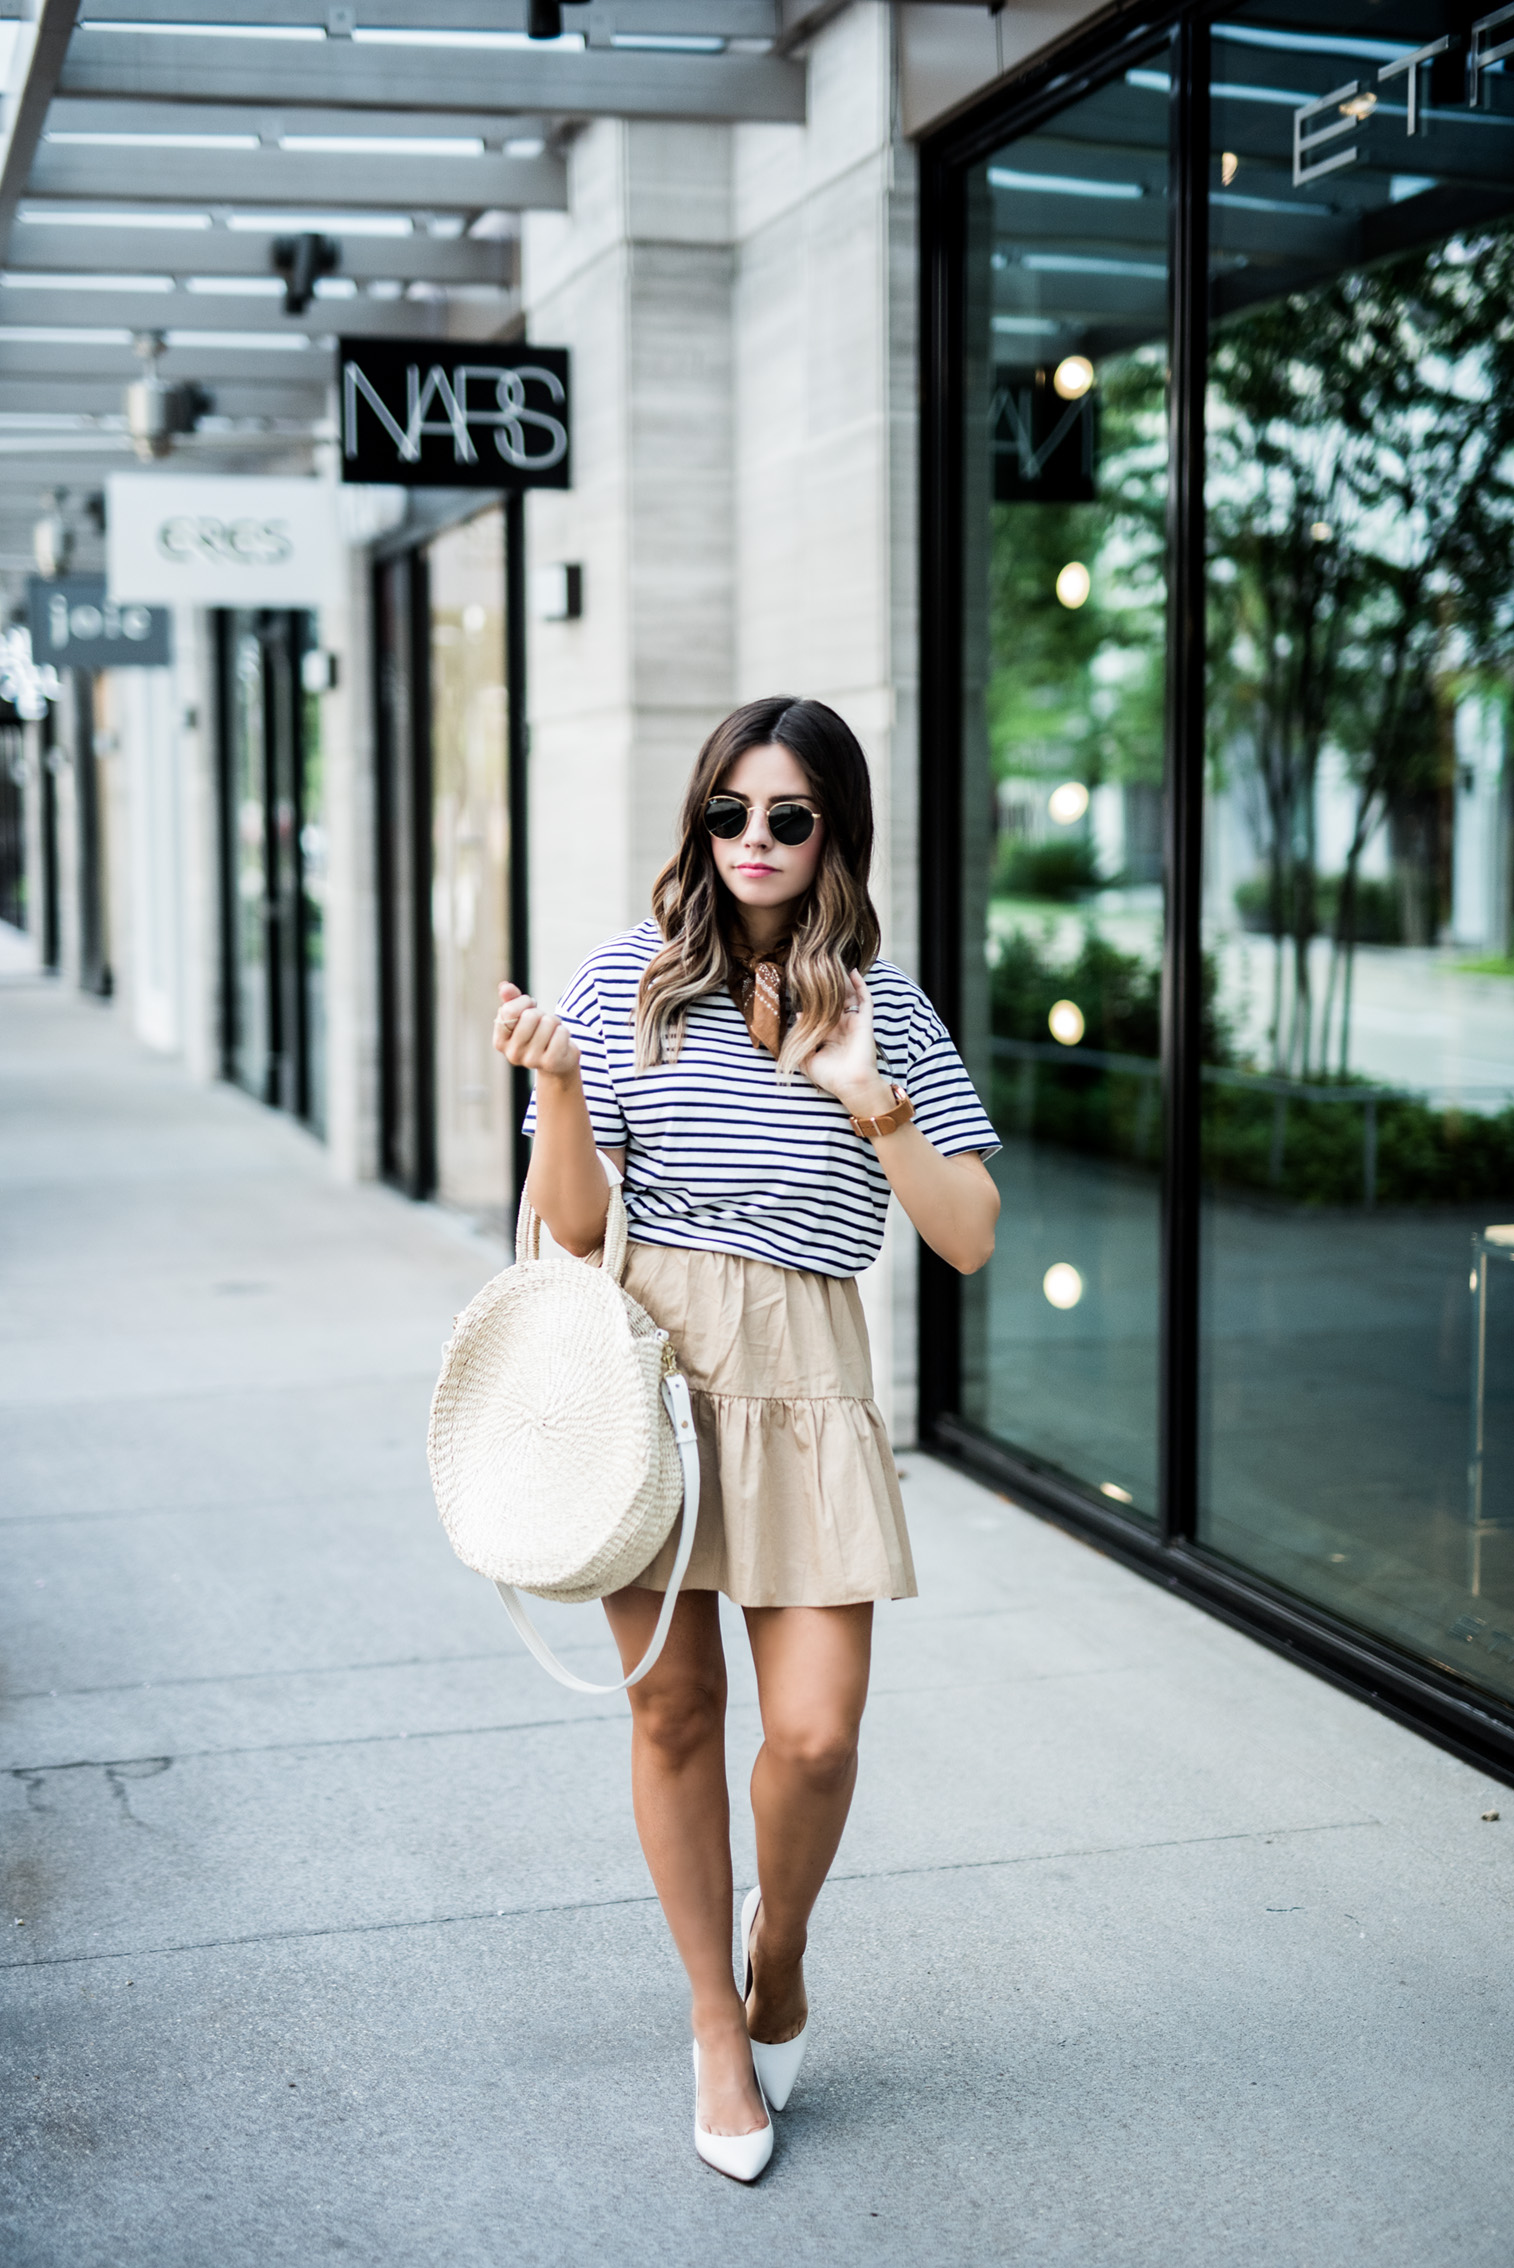 Tiffany Jais Houston fashion and lifestyle blogger | circle straw tote, ruffle hem skirt, casual summer outfits, street style 2017, white block heels, bandana outfits